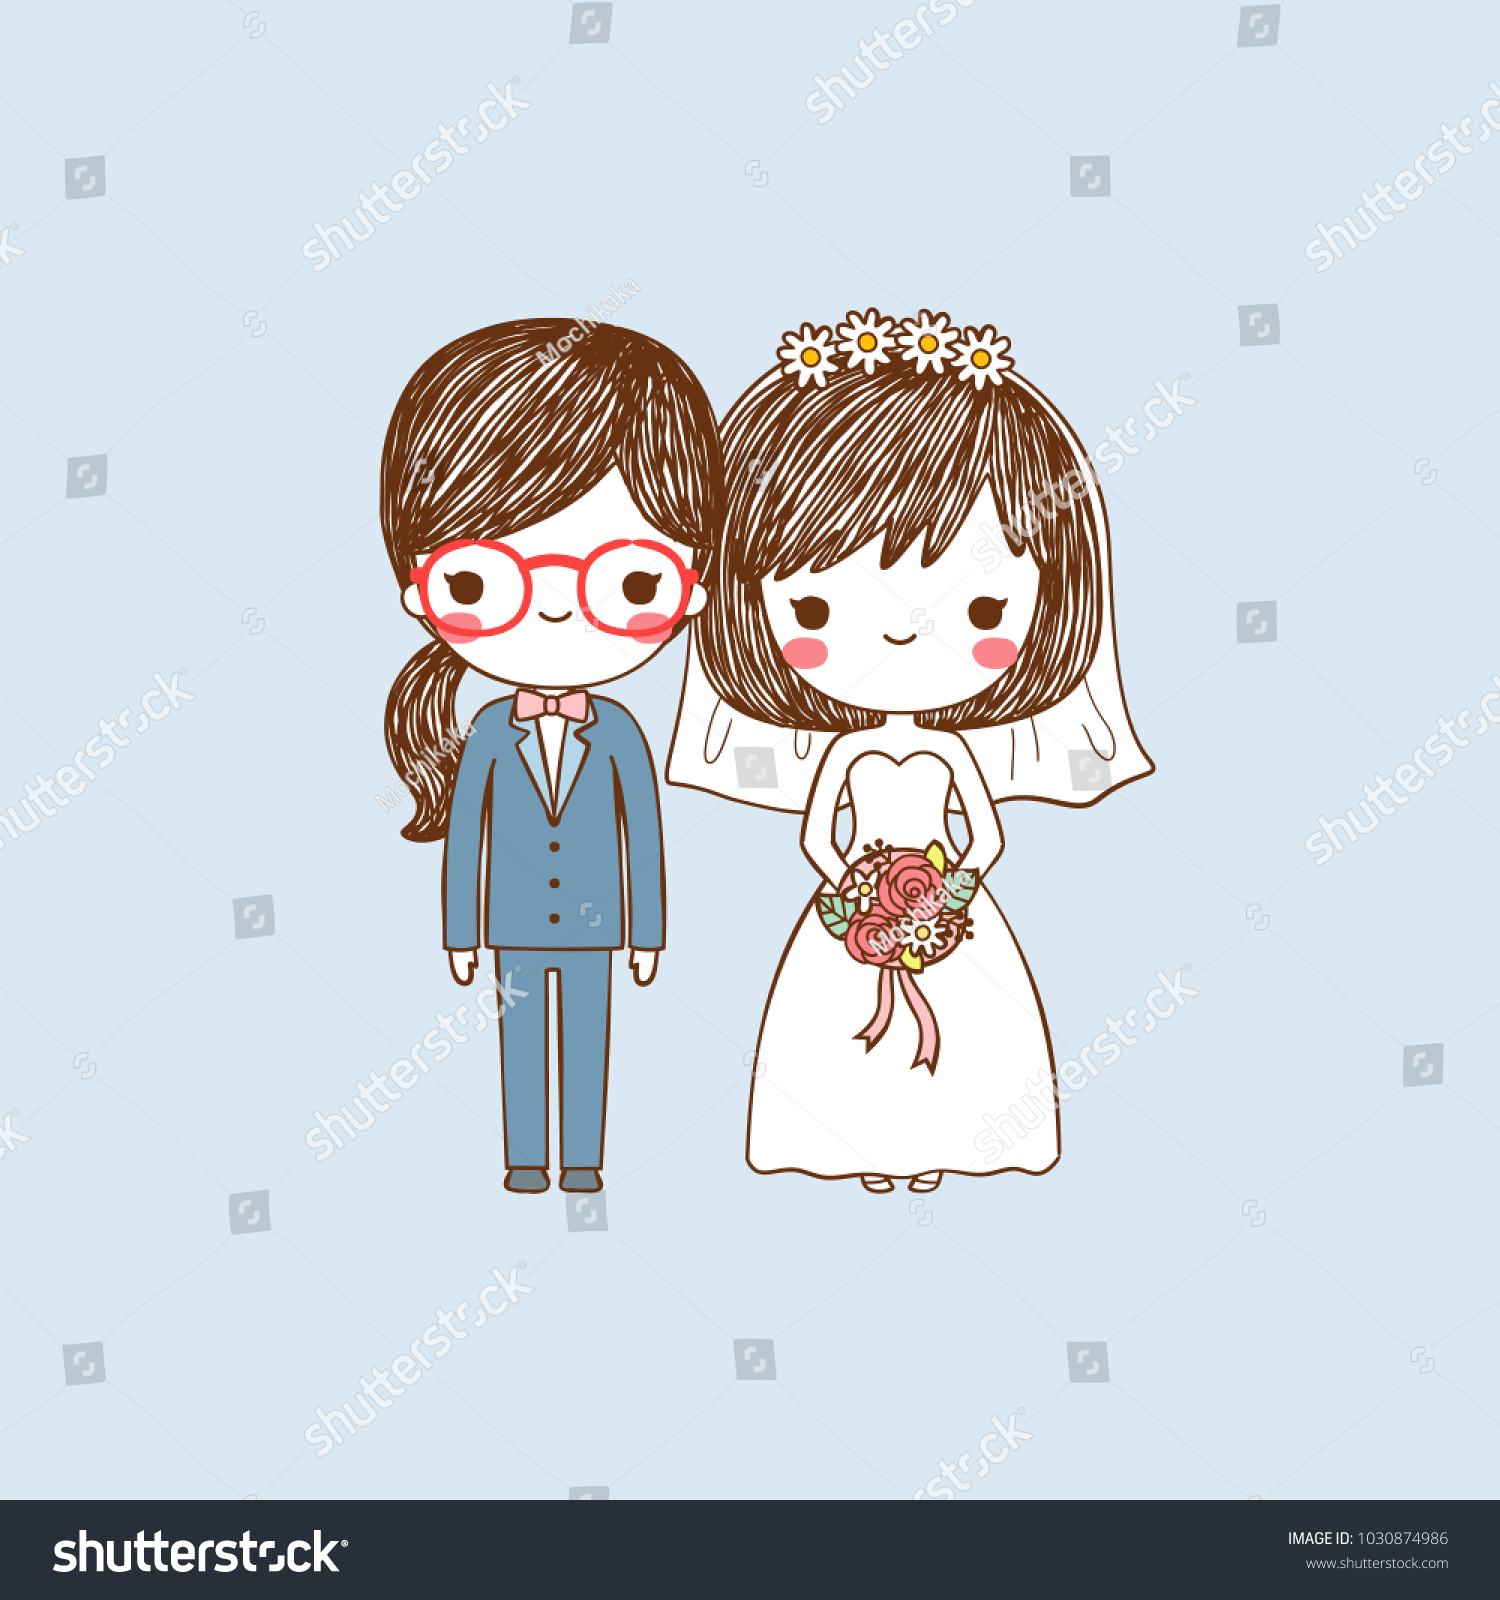 wedding invitation card portrait cute cartoon stock vector